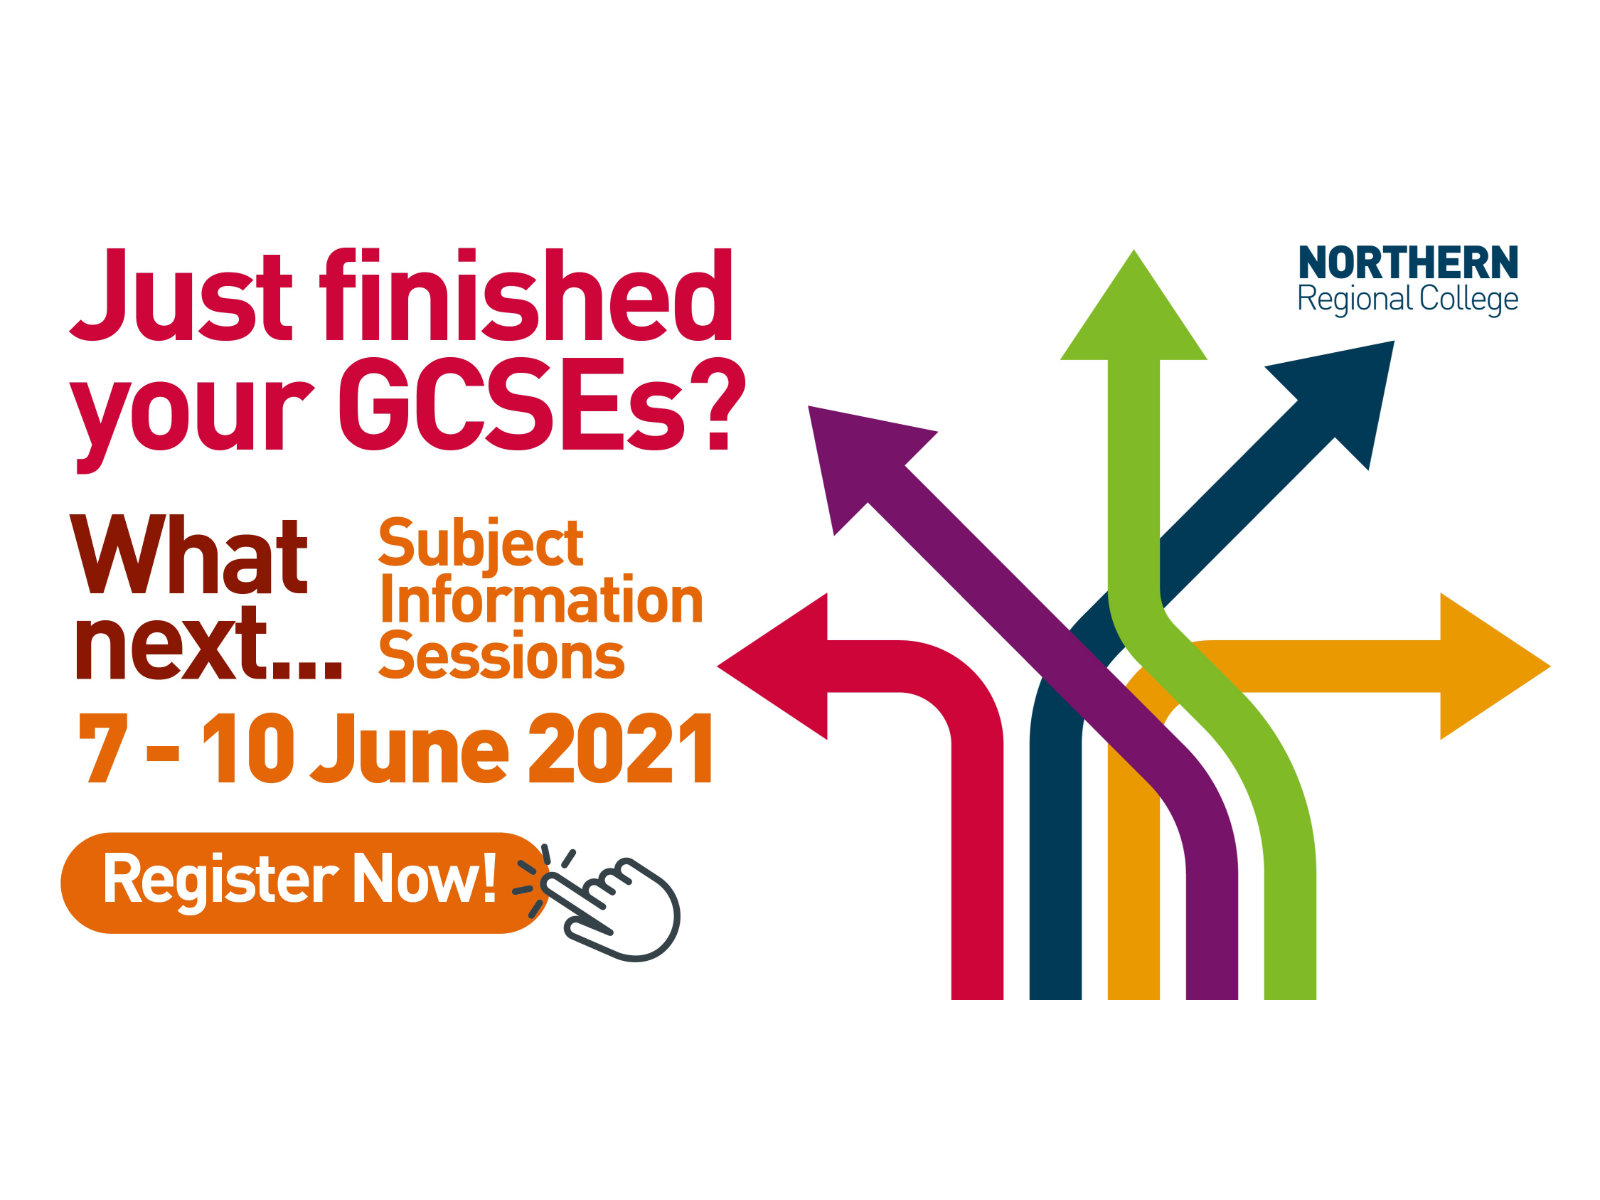 Just finished your GCSEs? What next... Subject Information Sessions, 7-10 June 2021, register now!